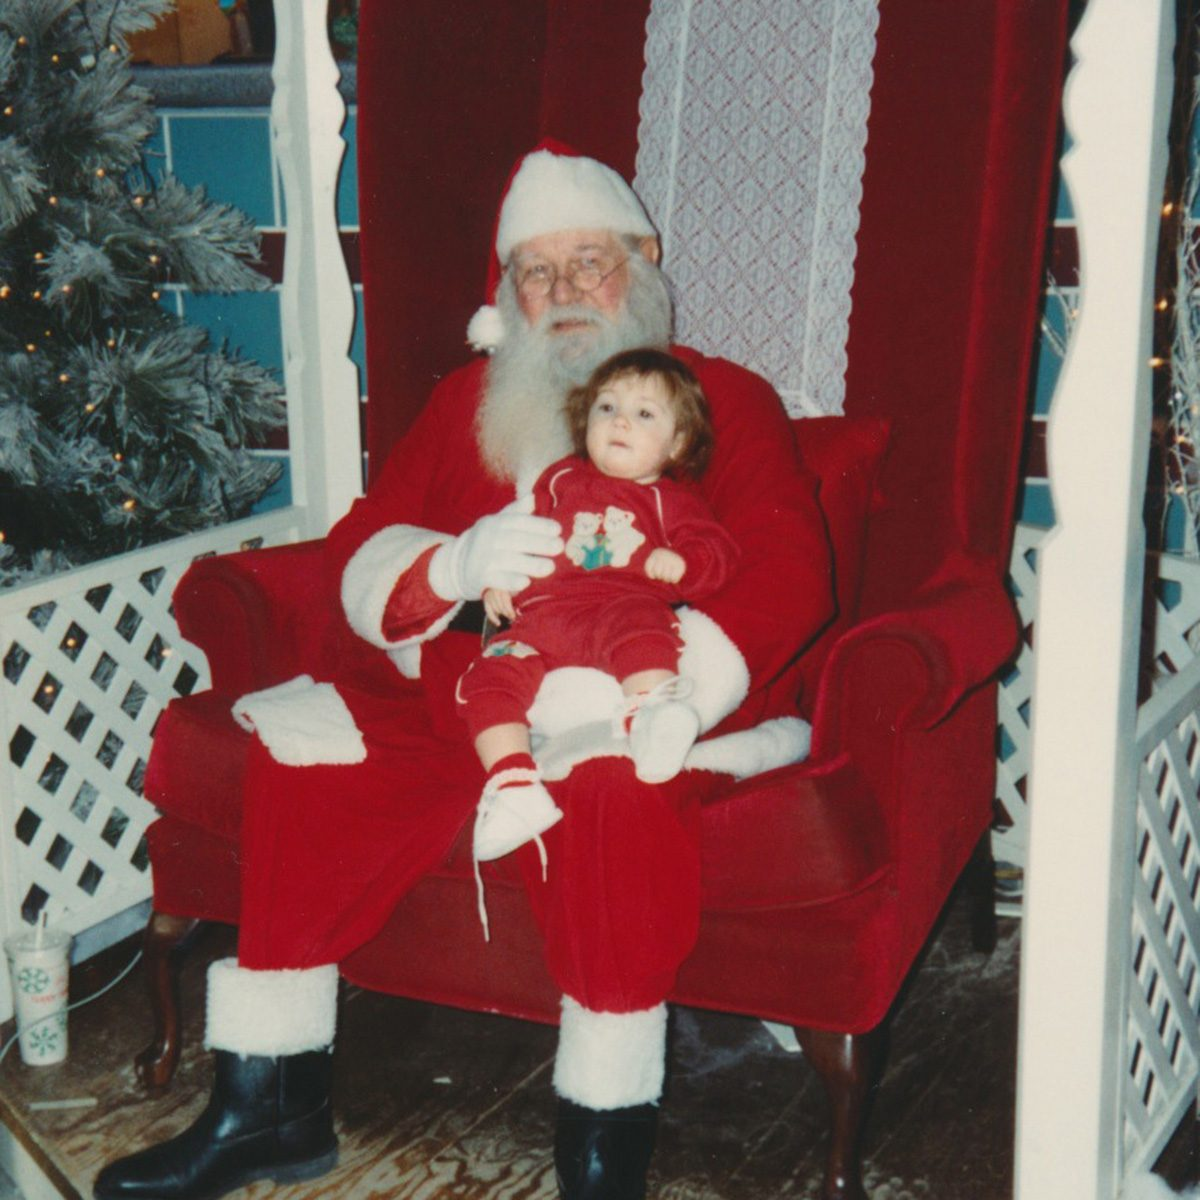 Young child sitting on Santa's lap